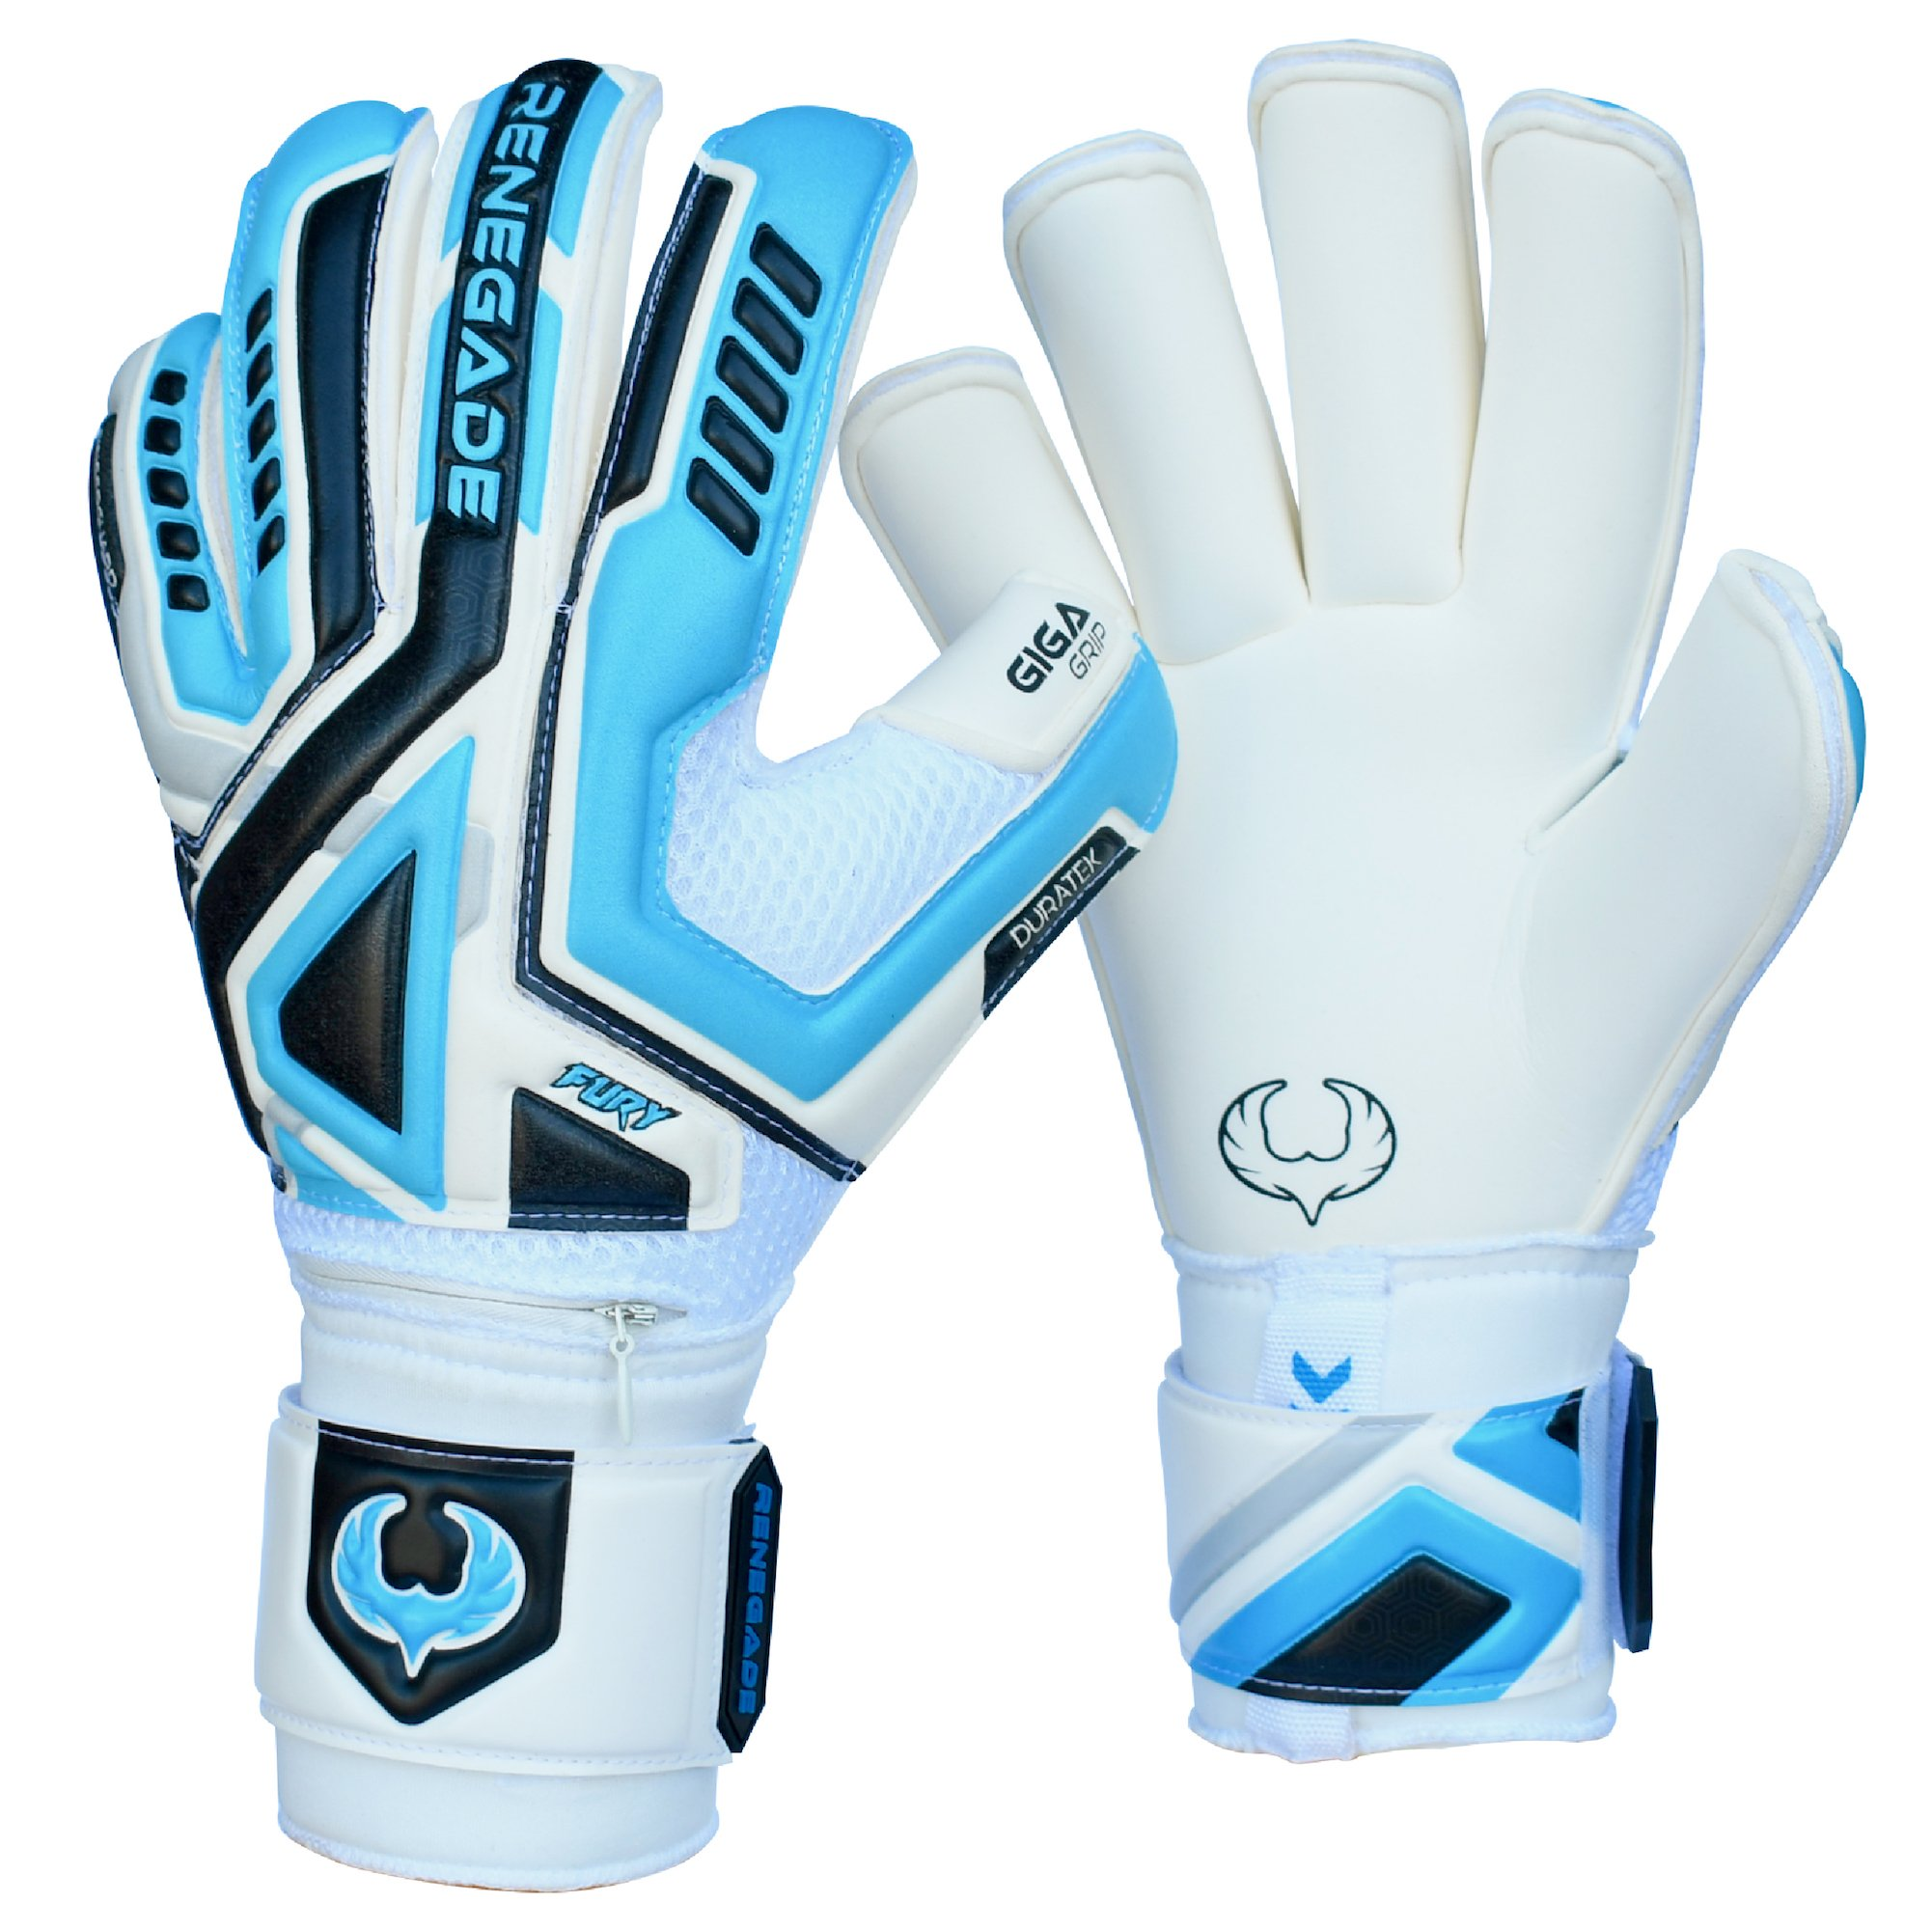 R- GK Fury Sub-Z Soccer Goalie Gloves Youth   Adult Roll Cut (Size 8) with  Pro Fingersaves - Improve Goal Blocking - Latest Soccer Goalie Equipment -  Men 4ba913a11